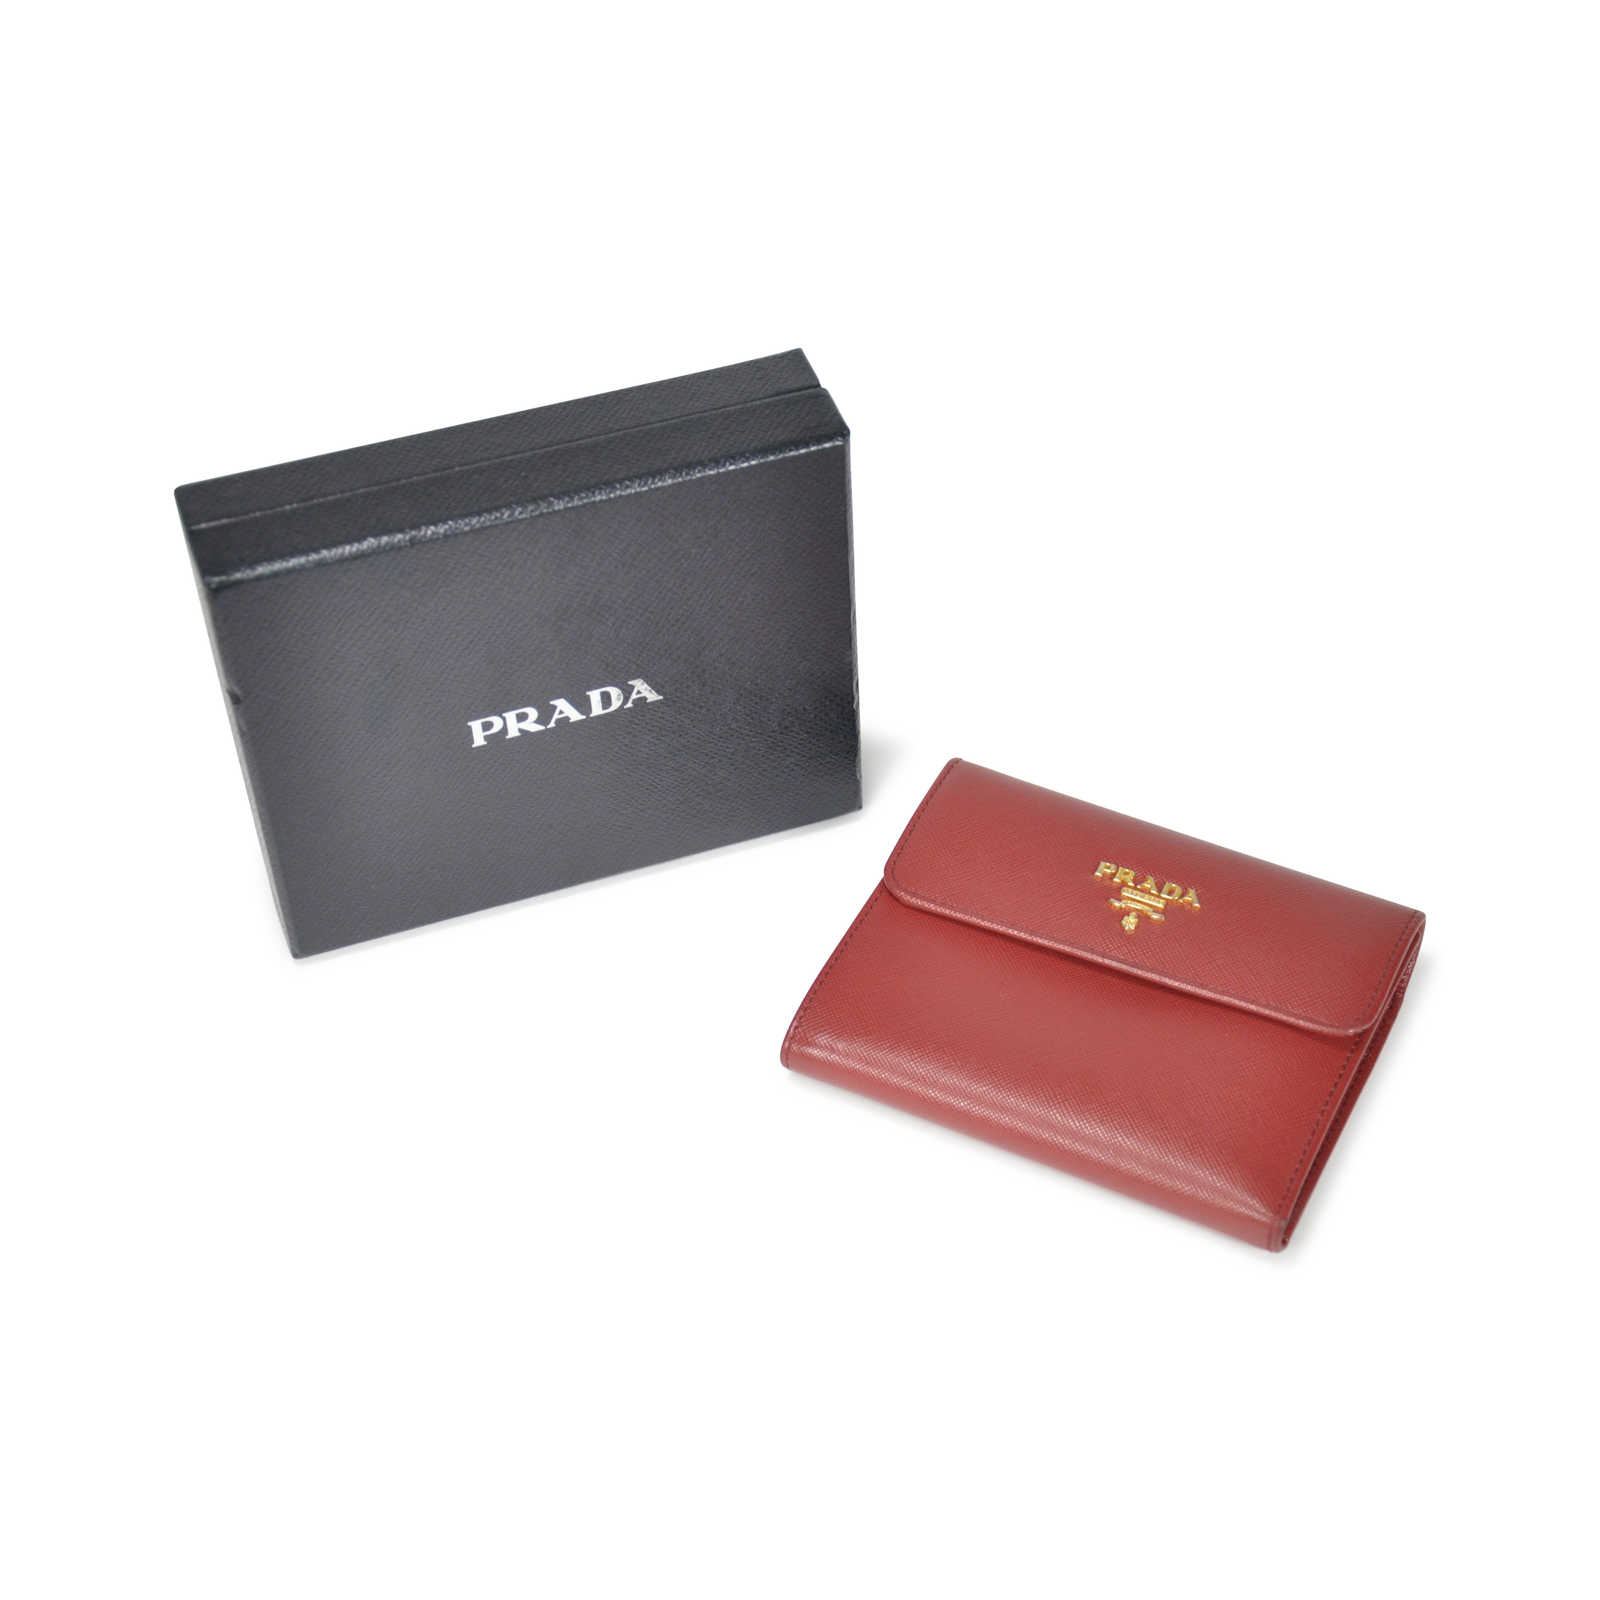 4697310d6785 ... low price authentic pre owned prada saffiano foldover wallet pss 199  00008 thumbnail 2927e c23d8